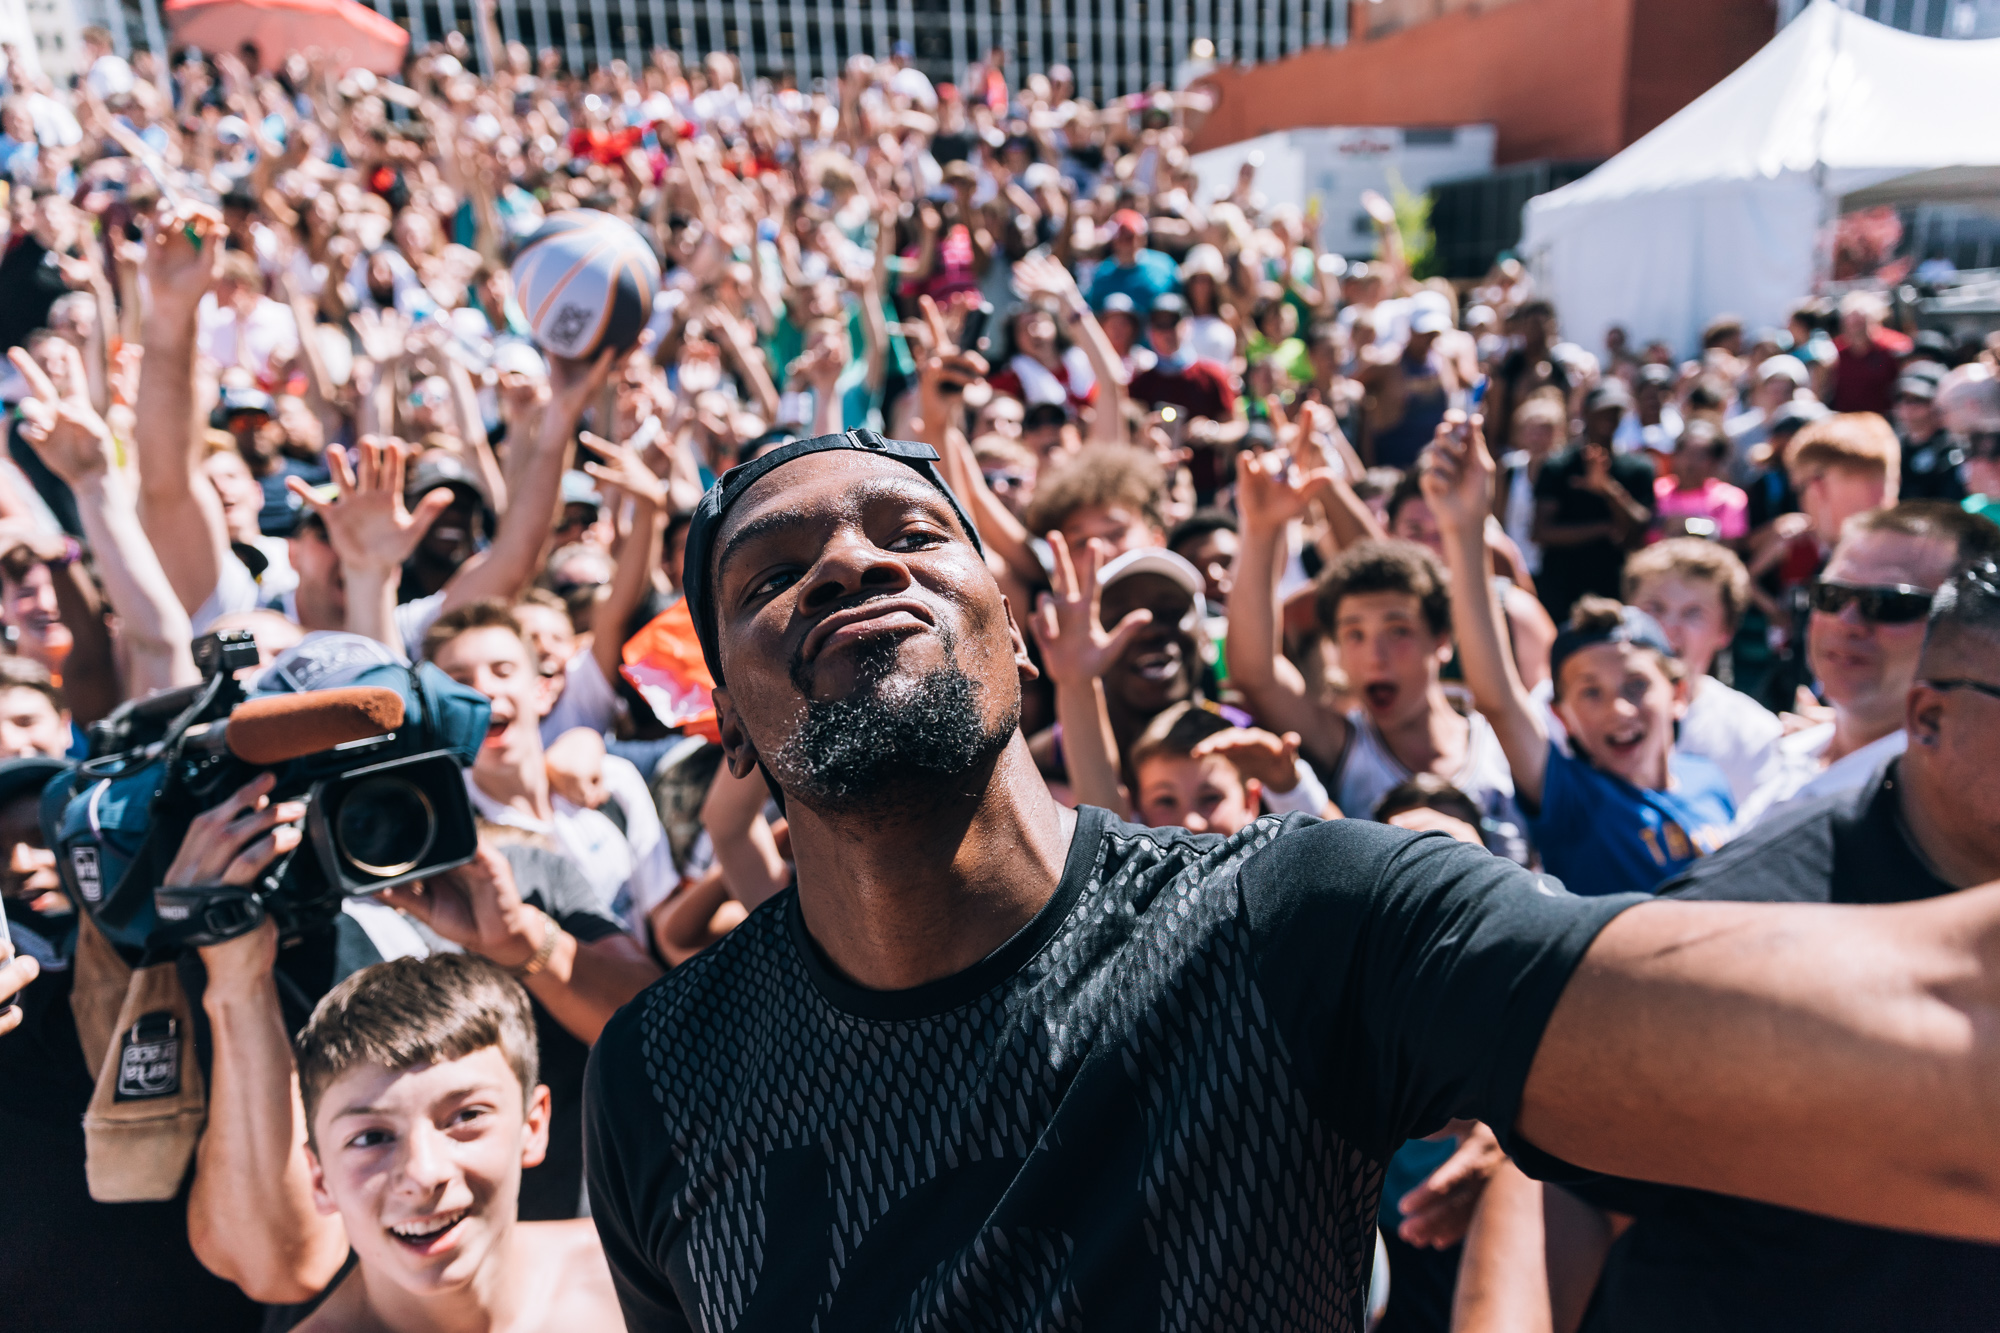 Kevin Durant's 2017 Appearance at Hoopfest